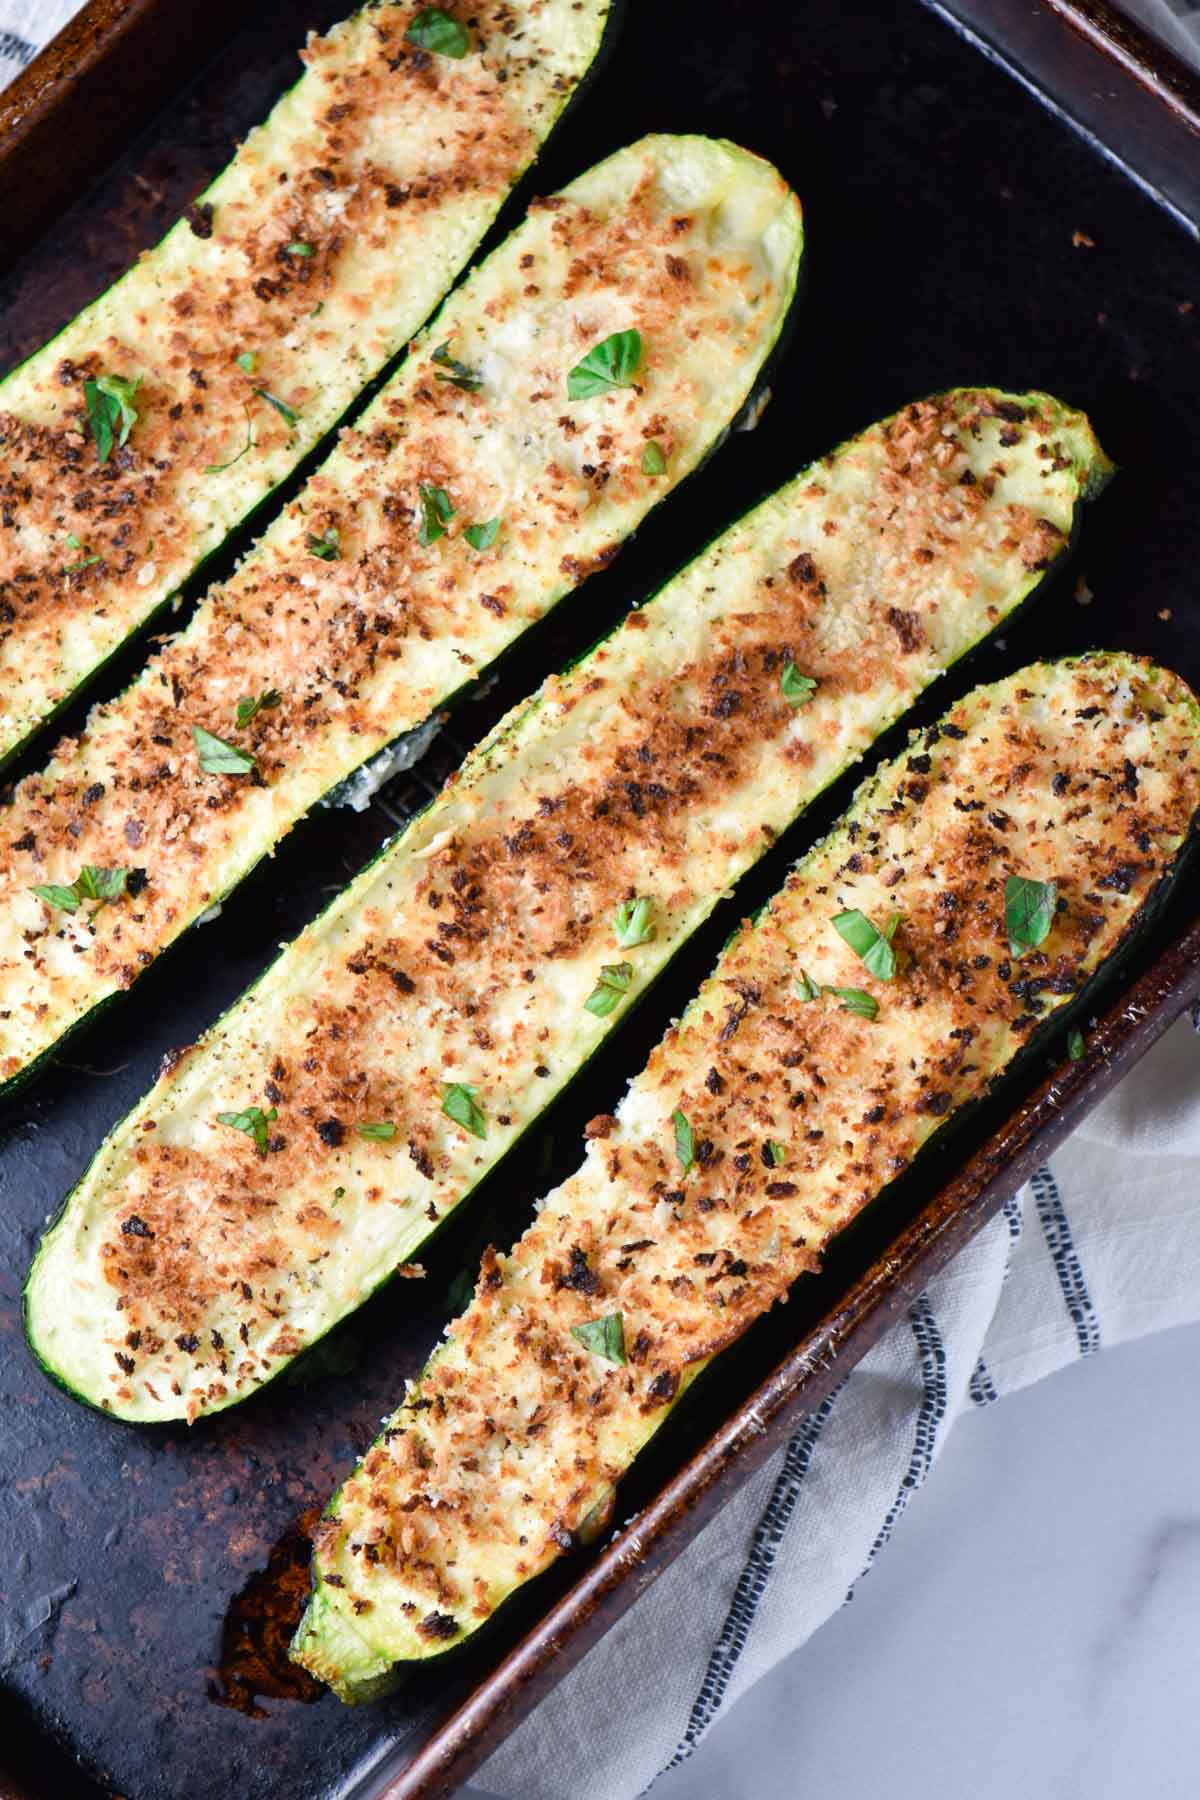 Four zucchini boats with a light brown panko crust on a metal sheet pan and towel